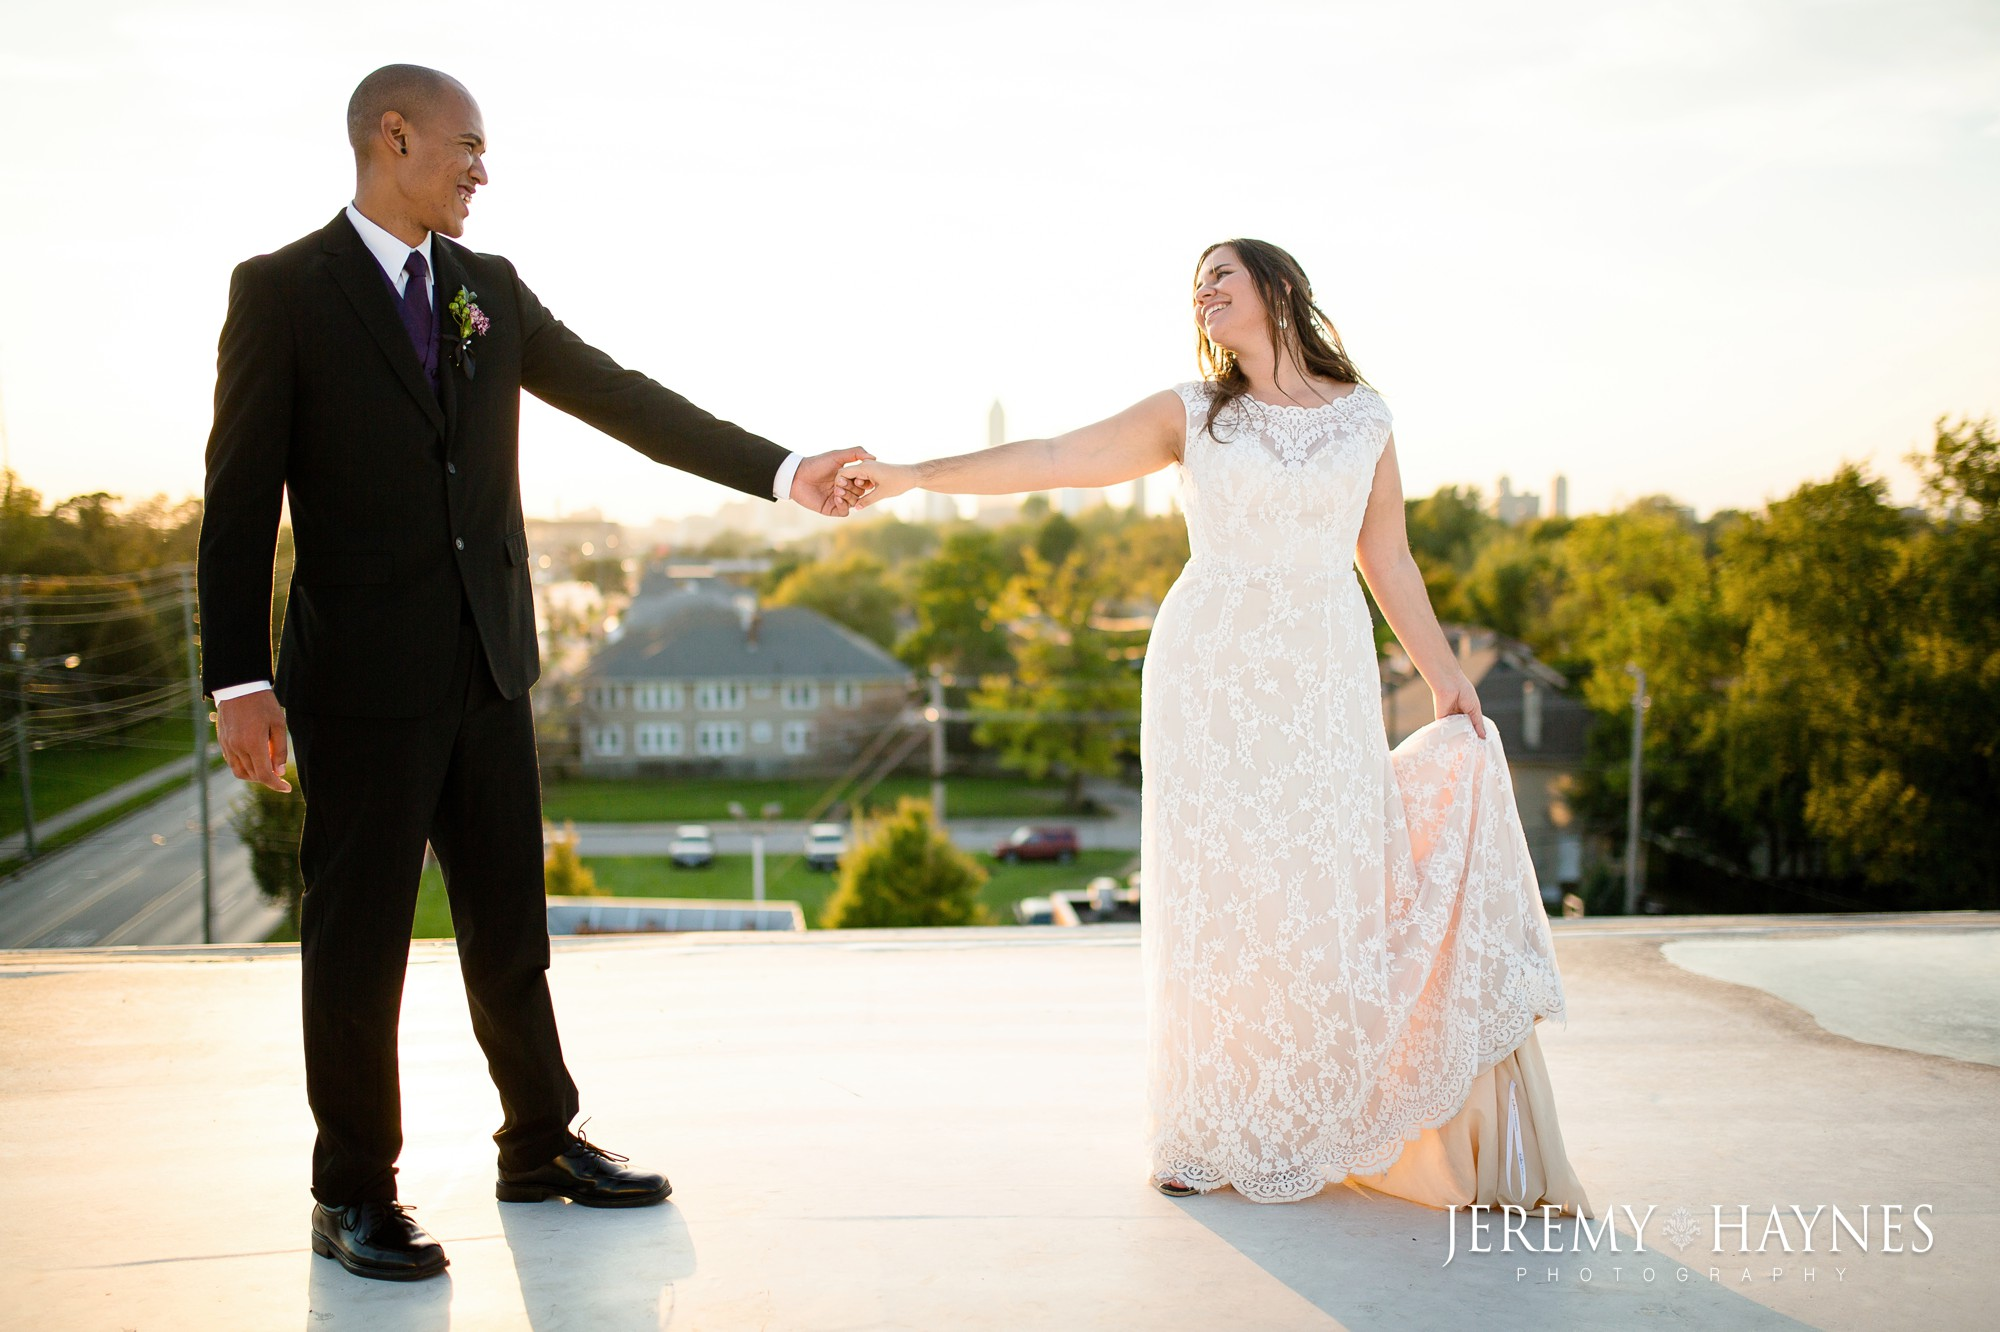 neidhammer-wedding-photos.jpg